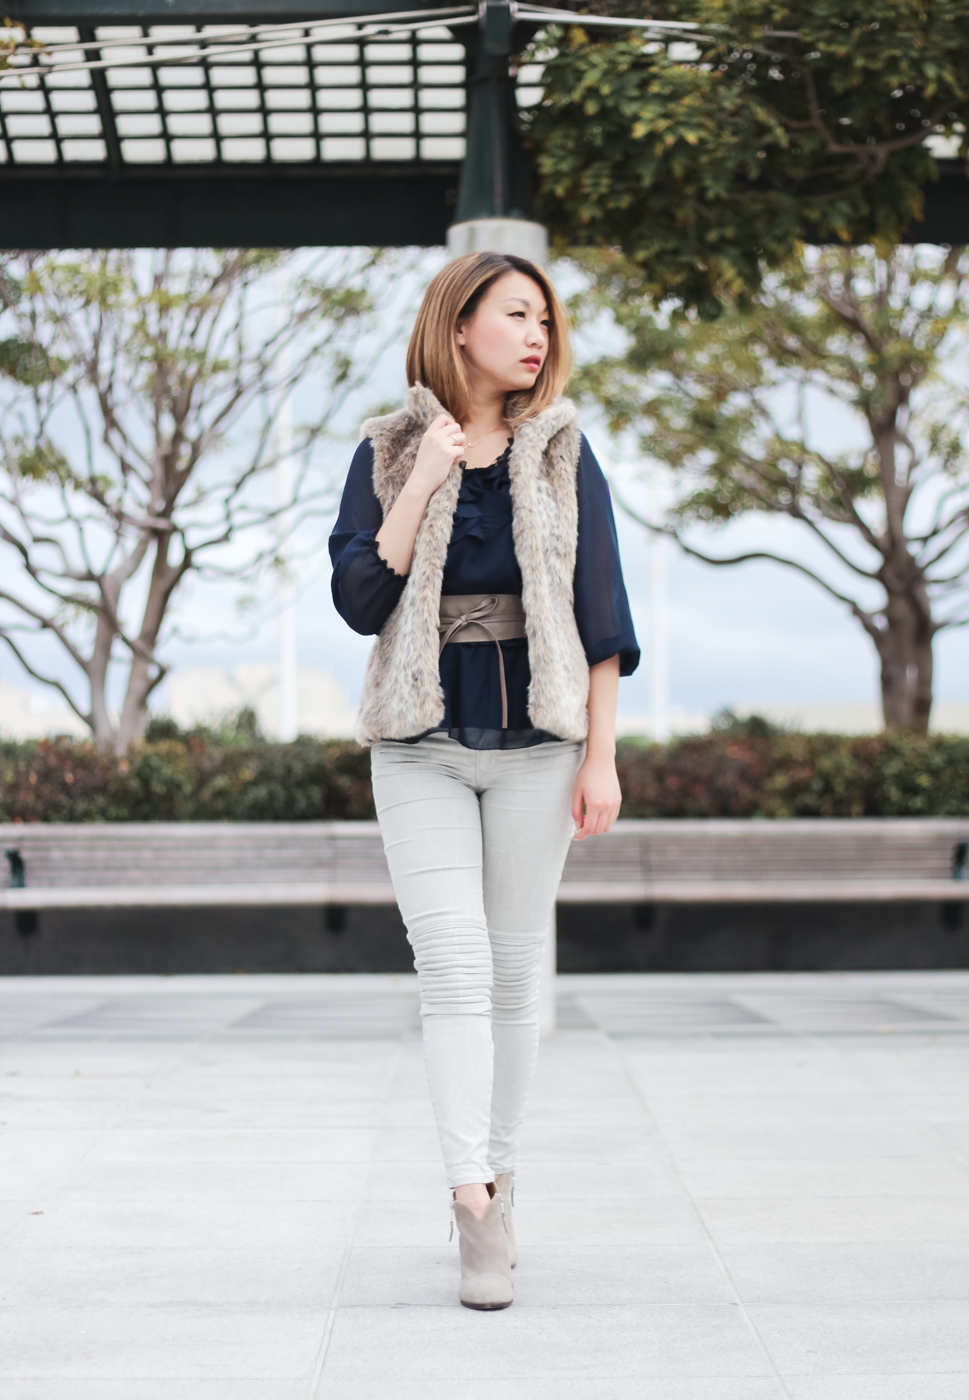 San Francisco Winter | Faux Fur Vest & Rag & Bone Margot Booties | The Chic Diary